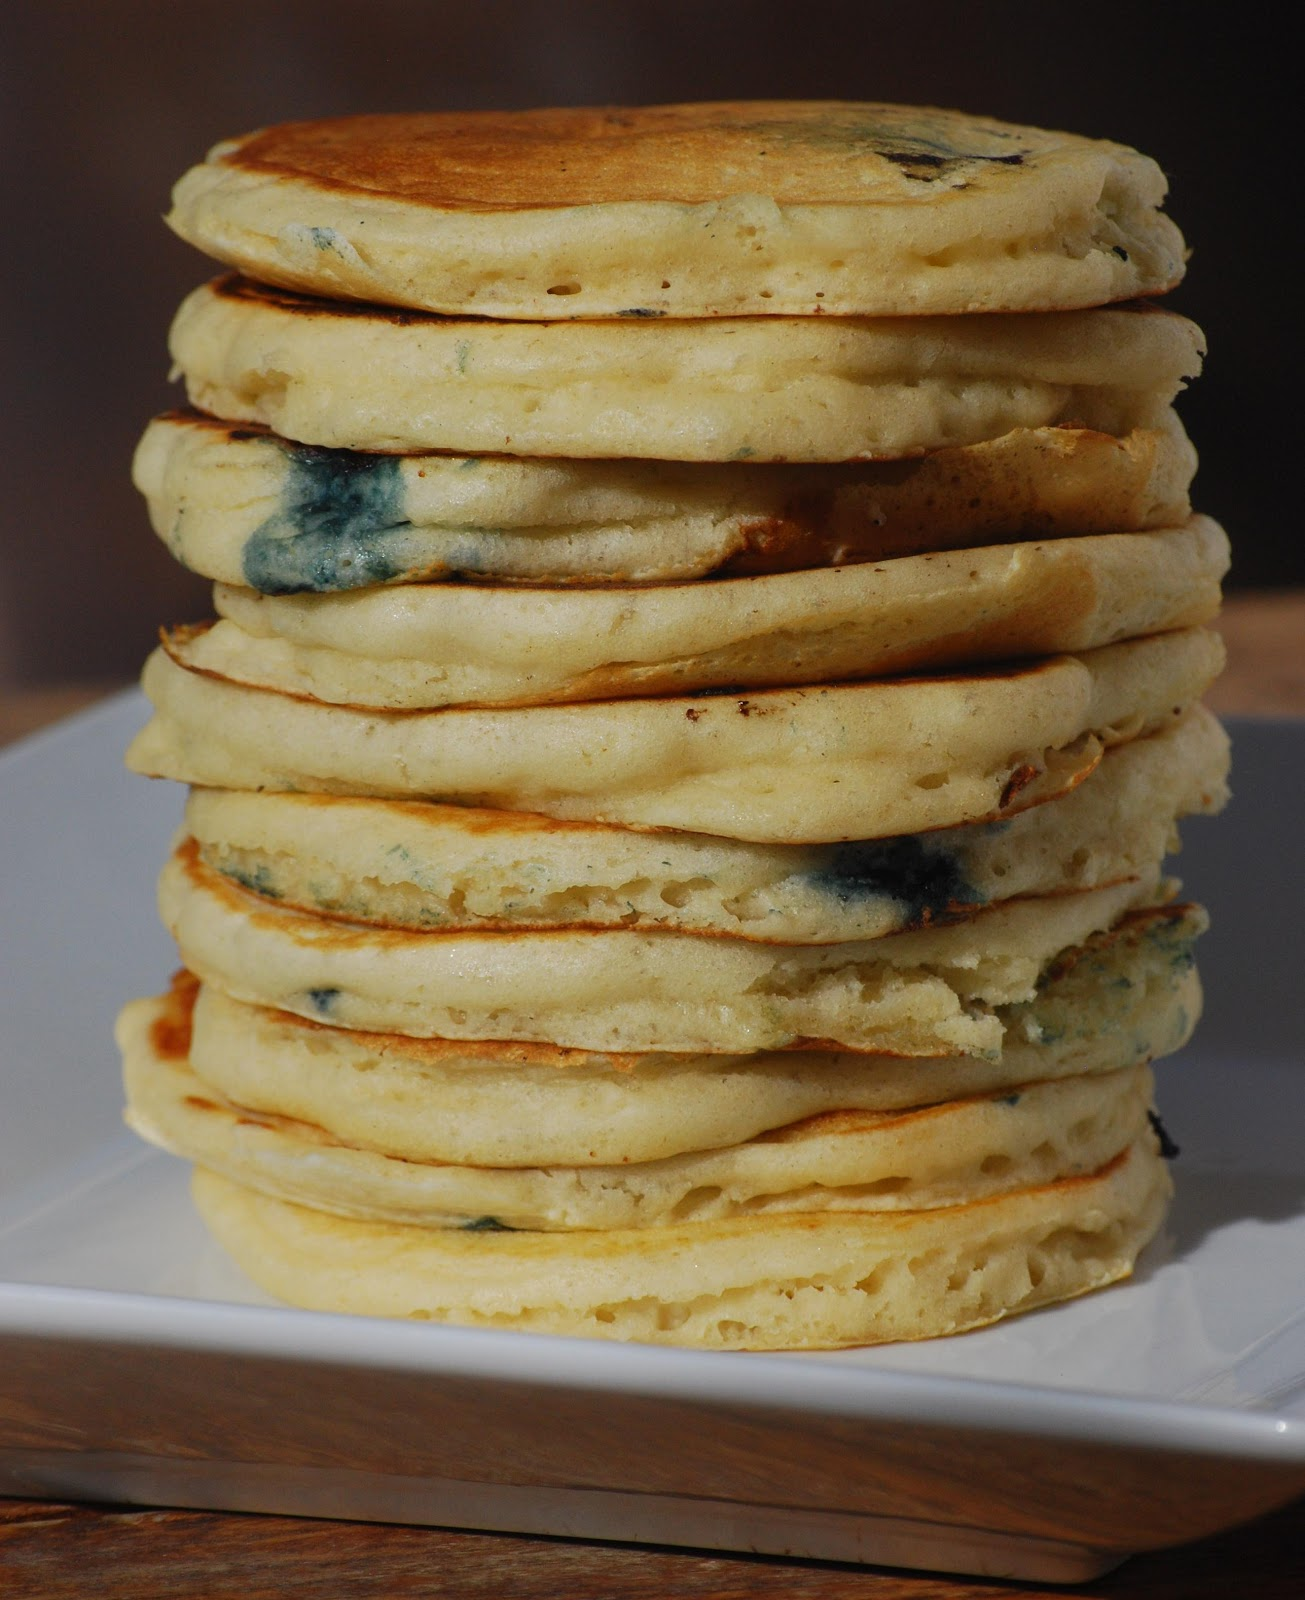 Blueberry+Buttermilk+Pancakes.jpg